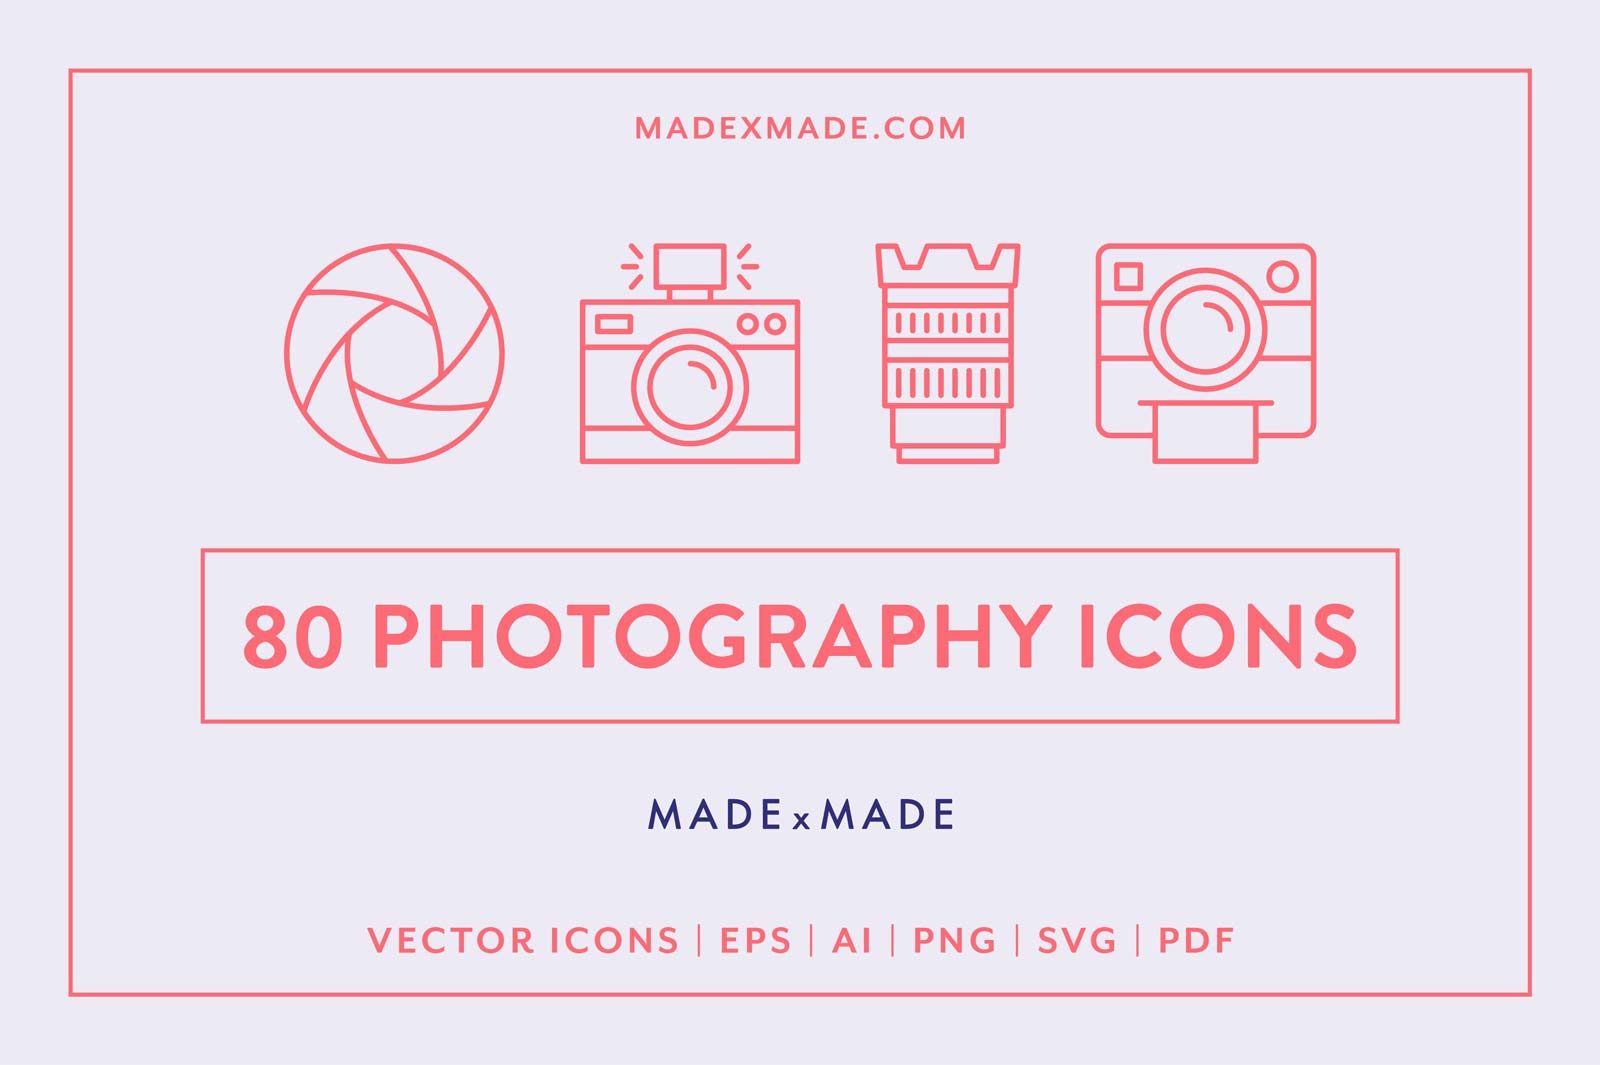 made x made icons photography